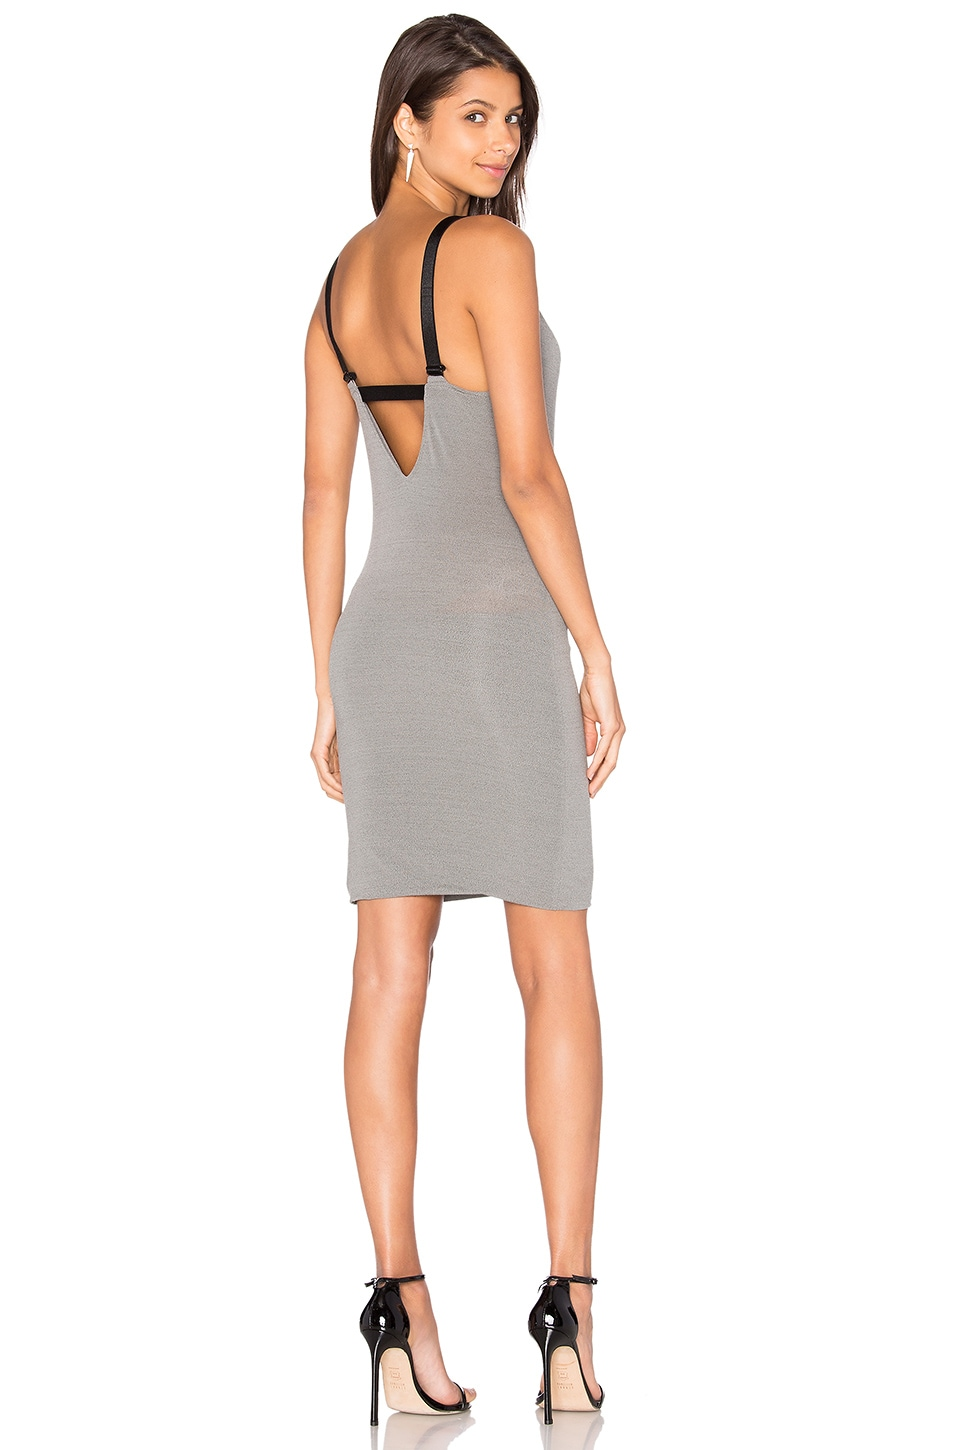 IRO Mealine Dress in Steel Grey